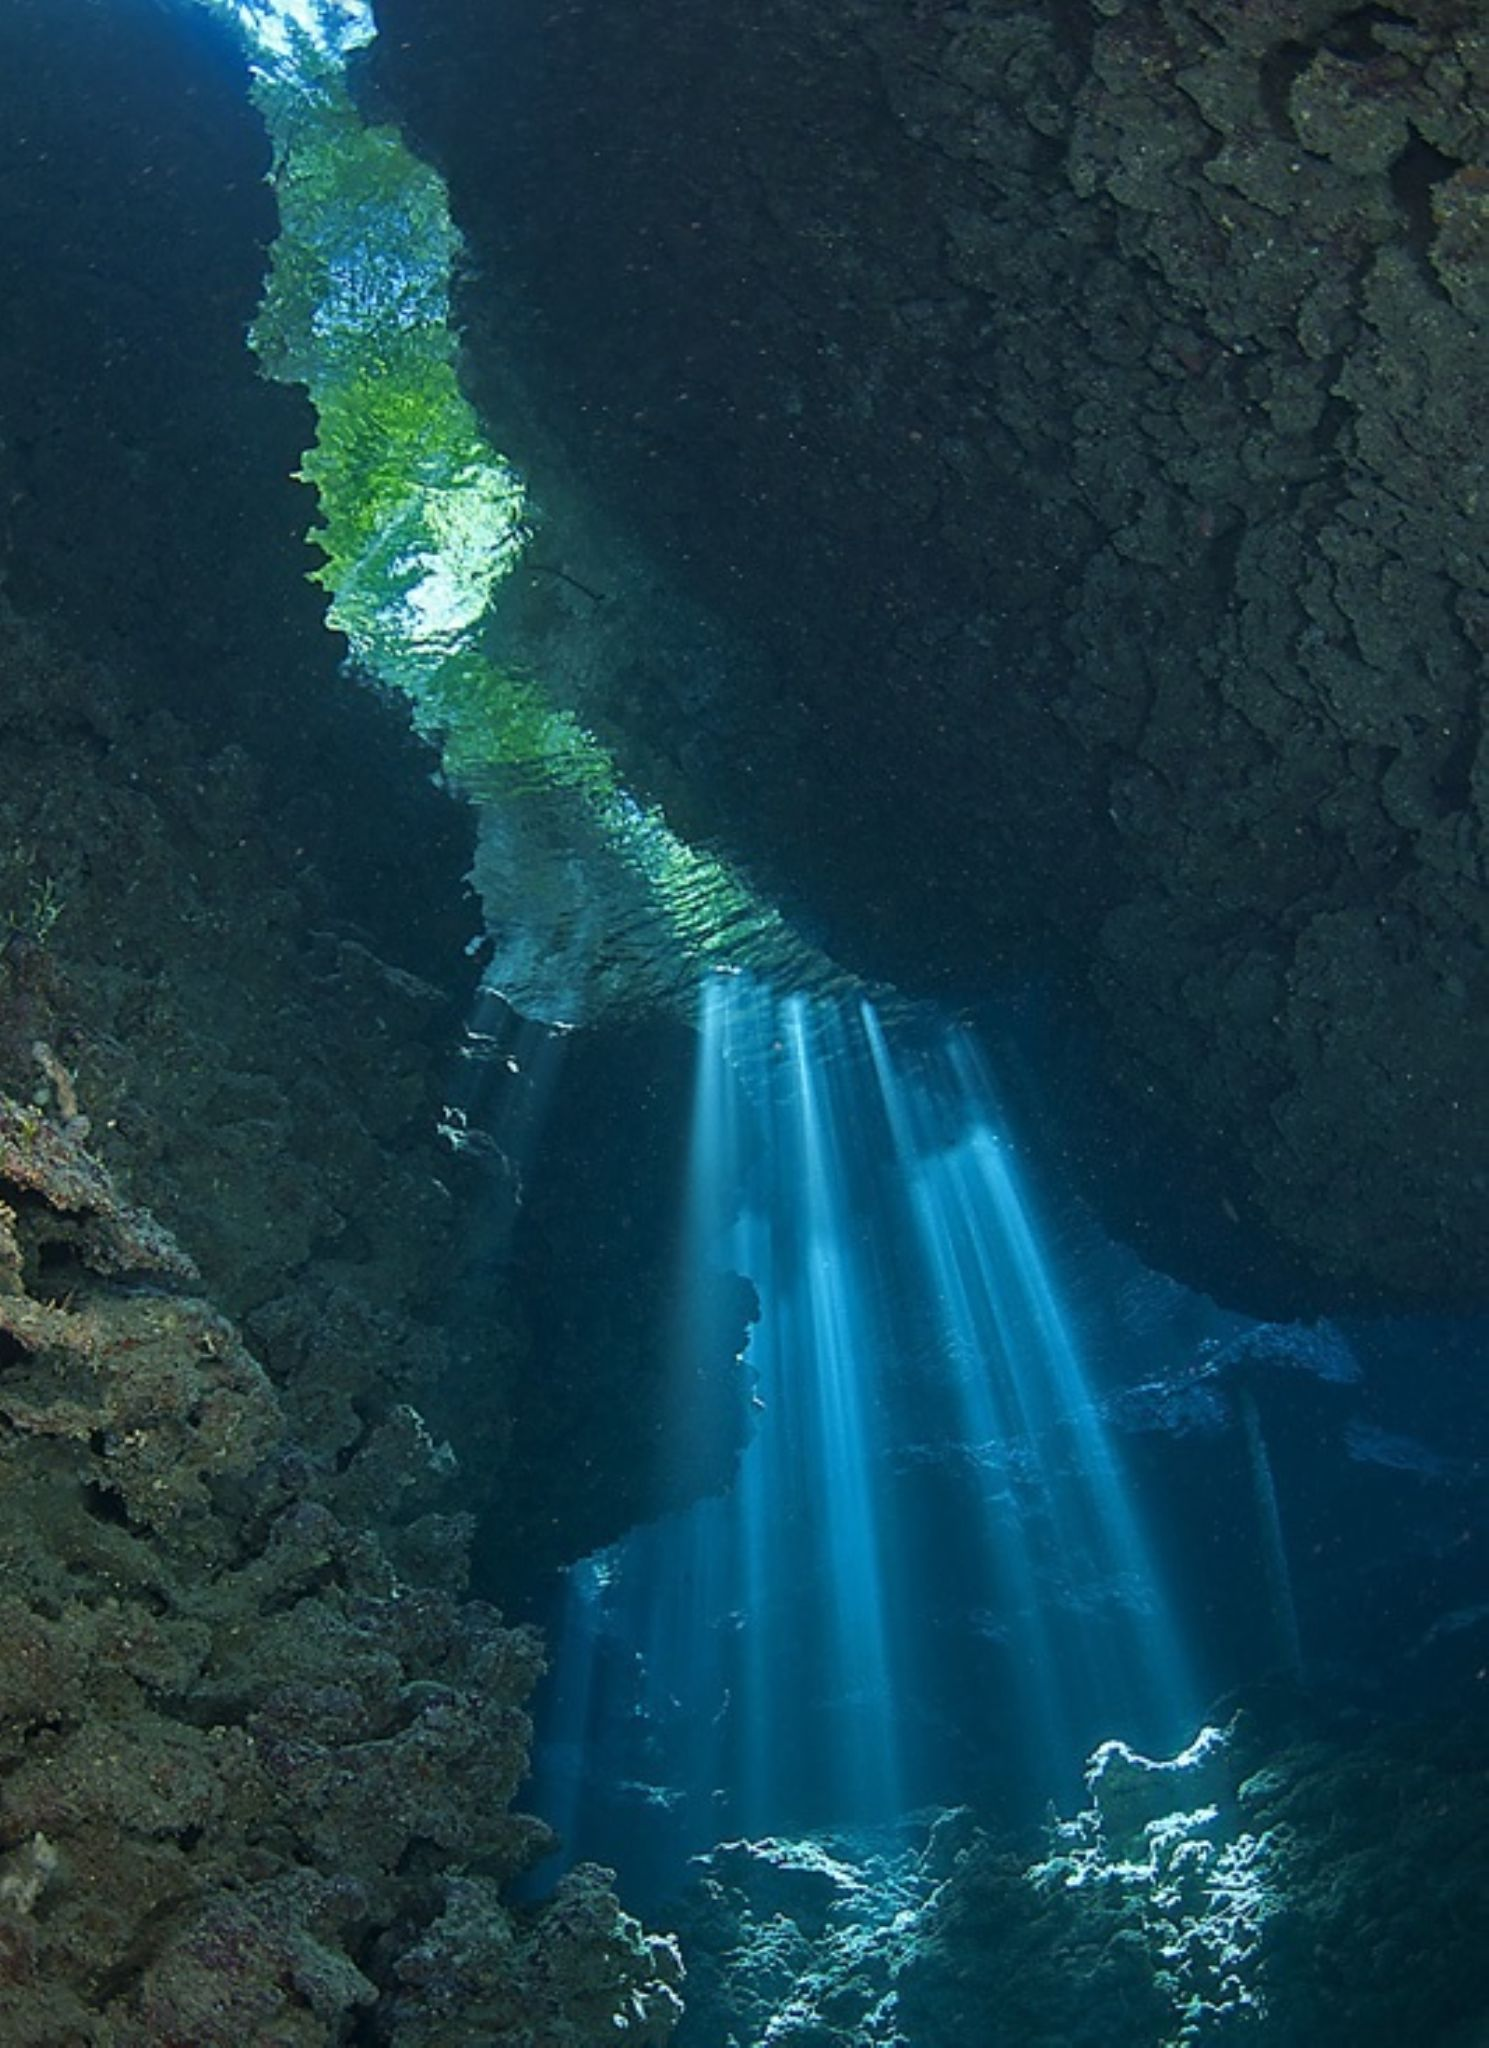 Shark Cave by Tony Brown